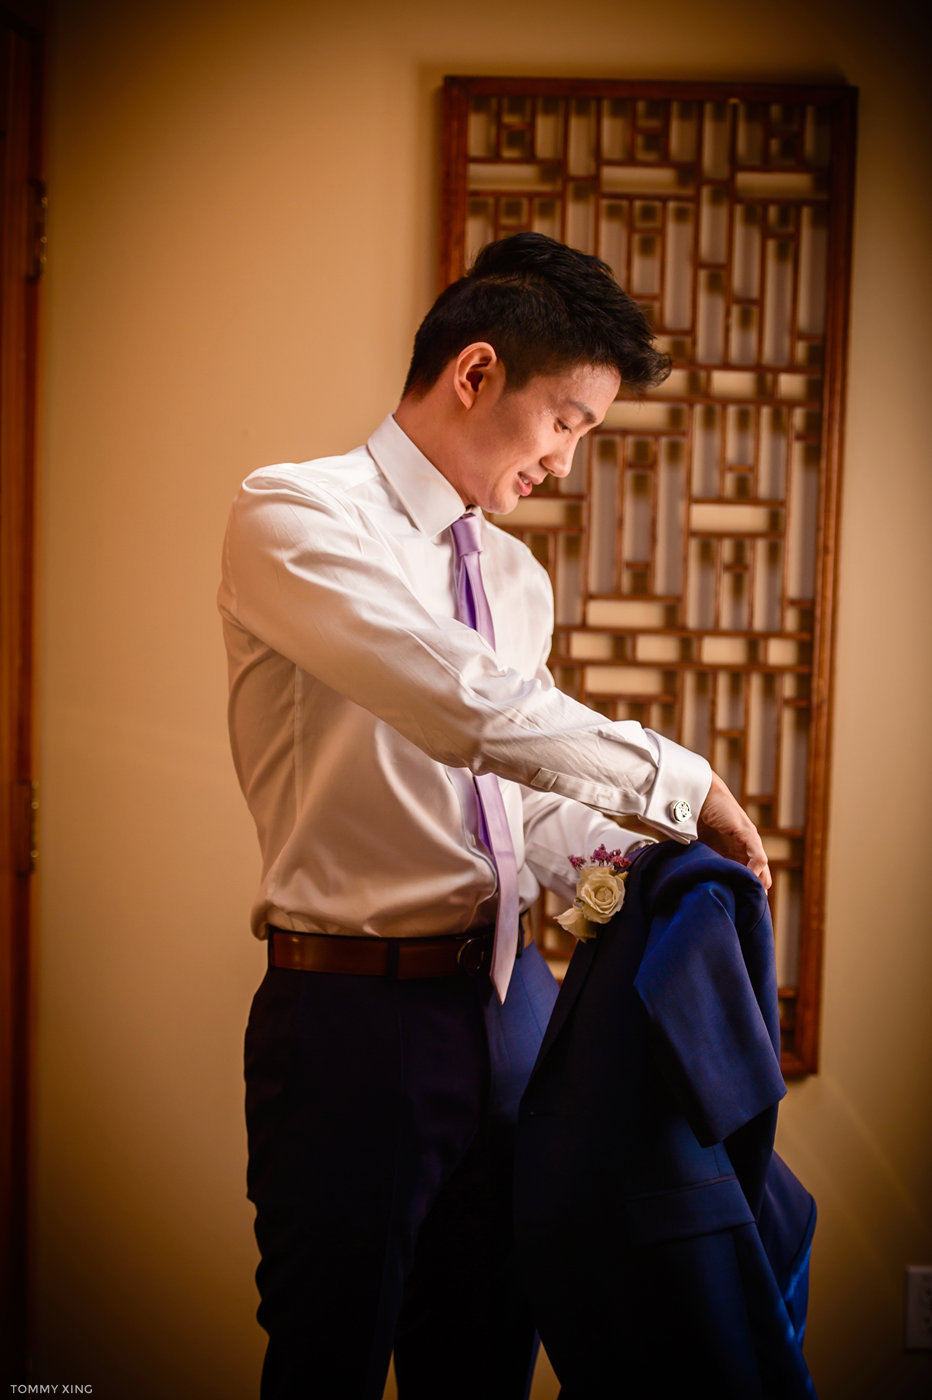 stanford memorial church wedding 旧金山湾区斯坦福教堂婚礼 Tommy Xing Photography 009.jpg